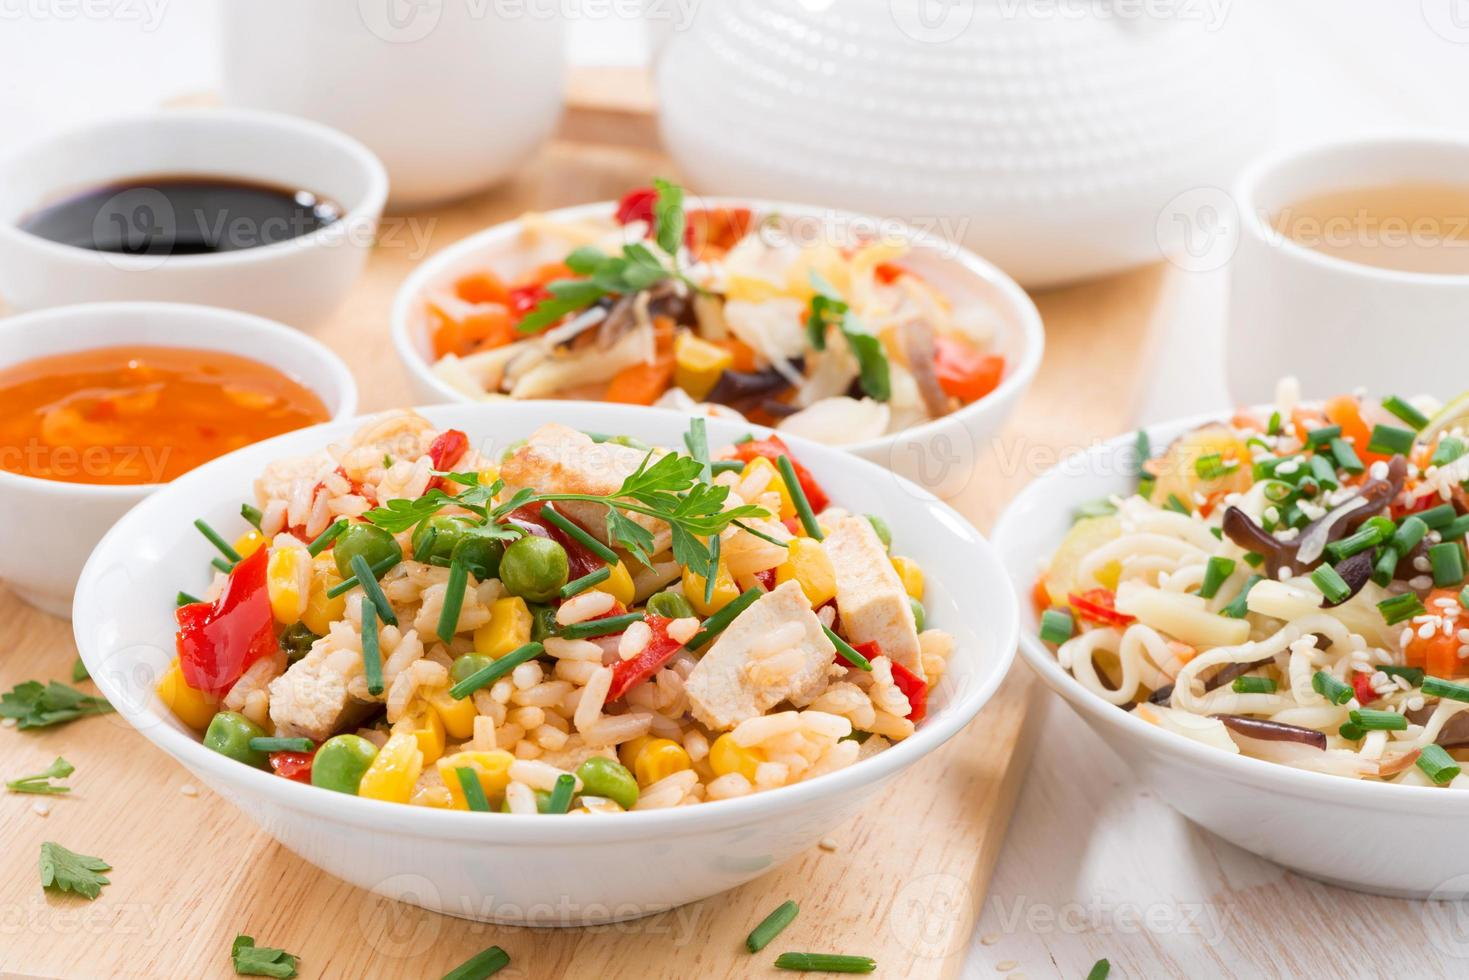 Asian lunch - fried rice with tofu, noodles, vegetables photo